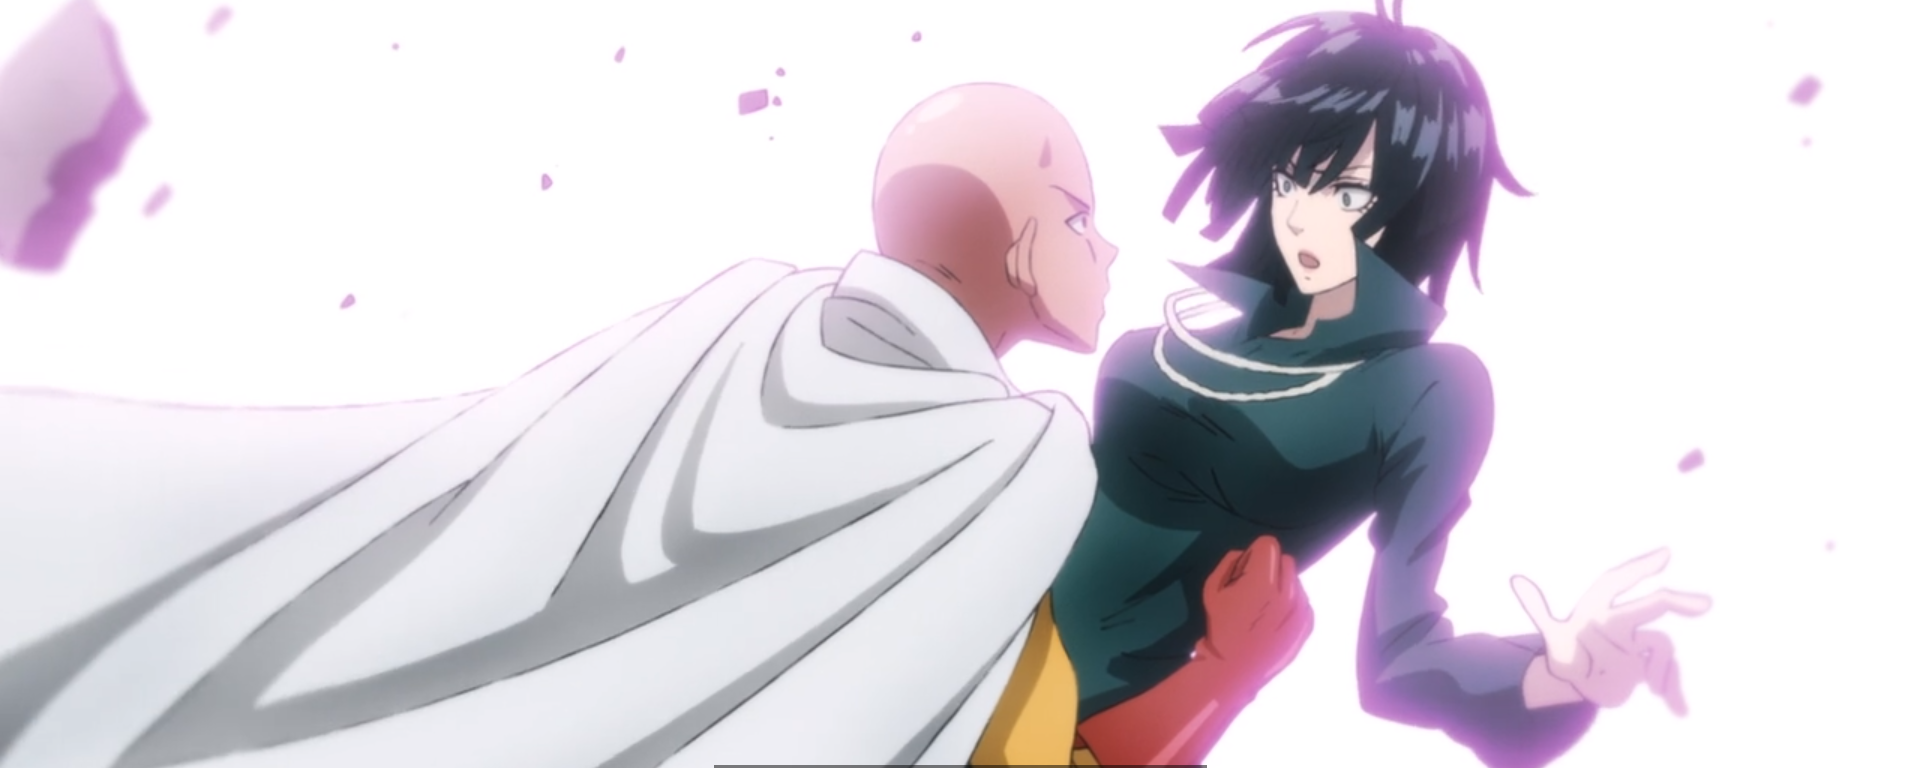 Fubuki And Garou One Punch Man Season 2 Episode 2 Episode 14 The Human Monster Review Sae With A K